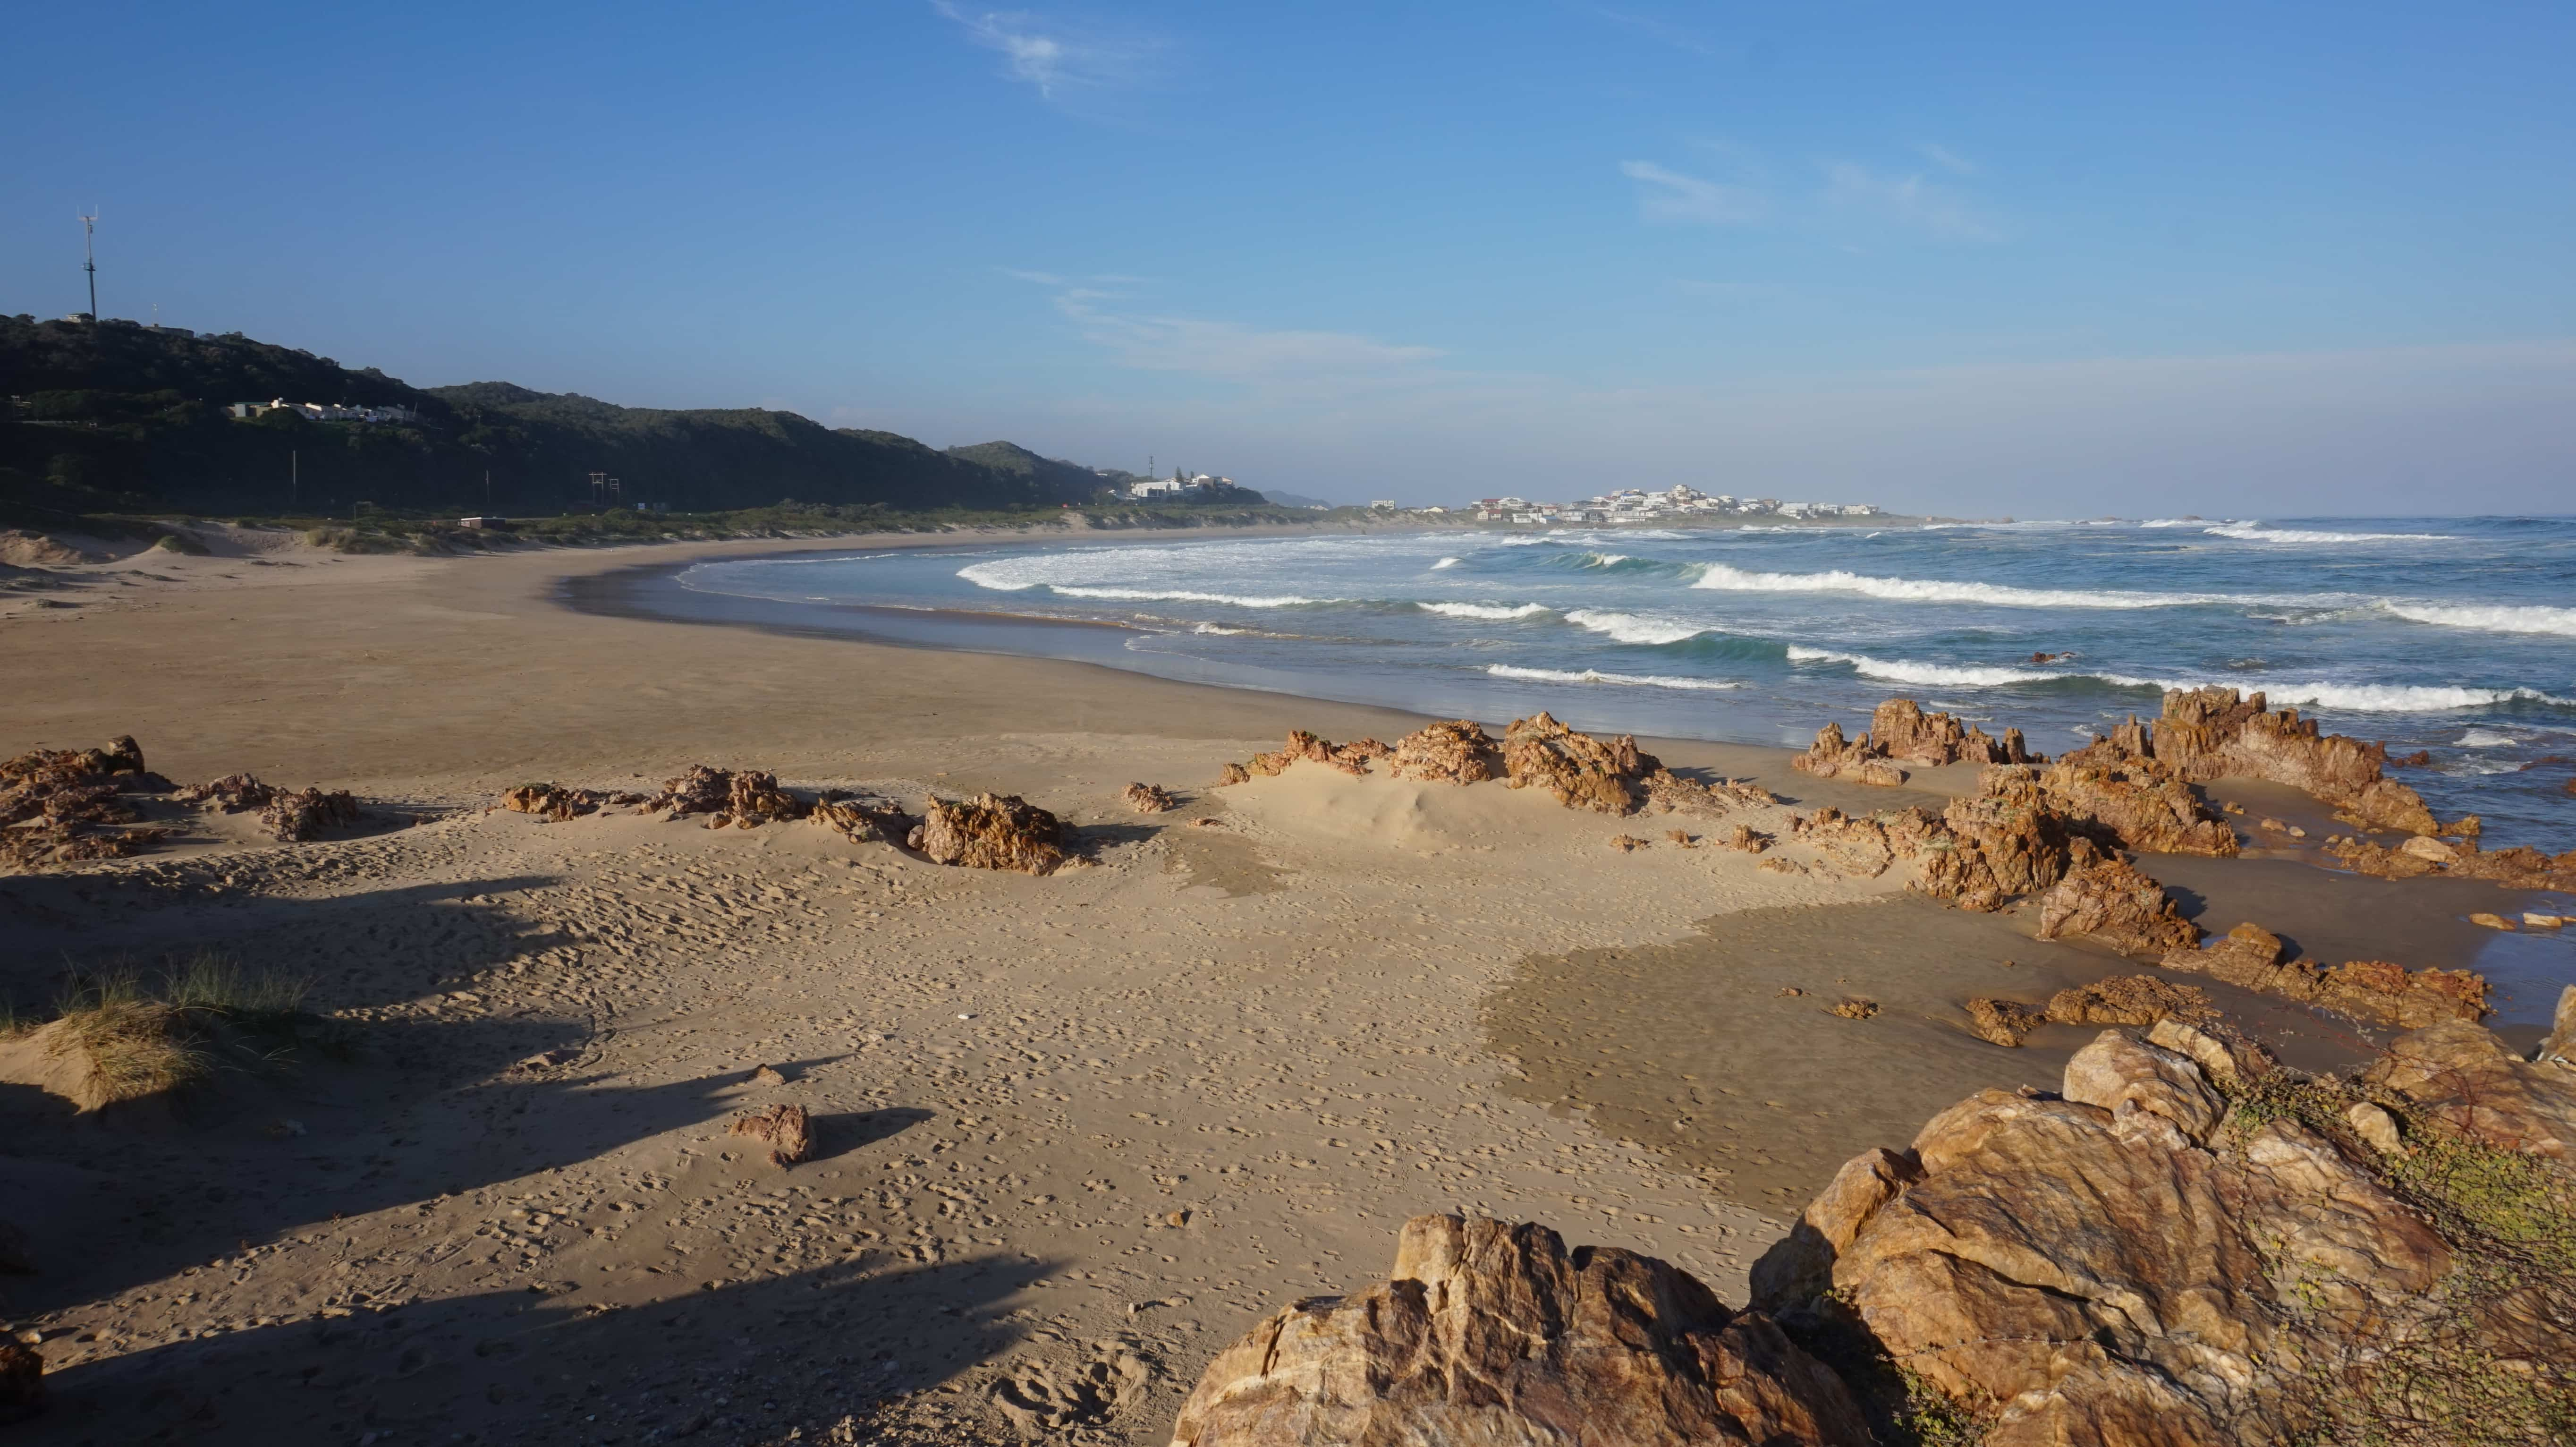 Beach in South Africa on the Garden Route